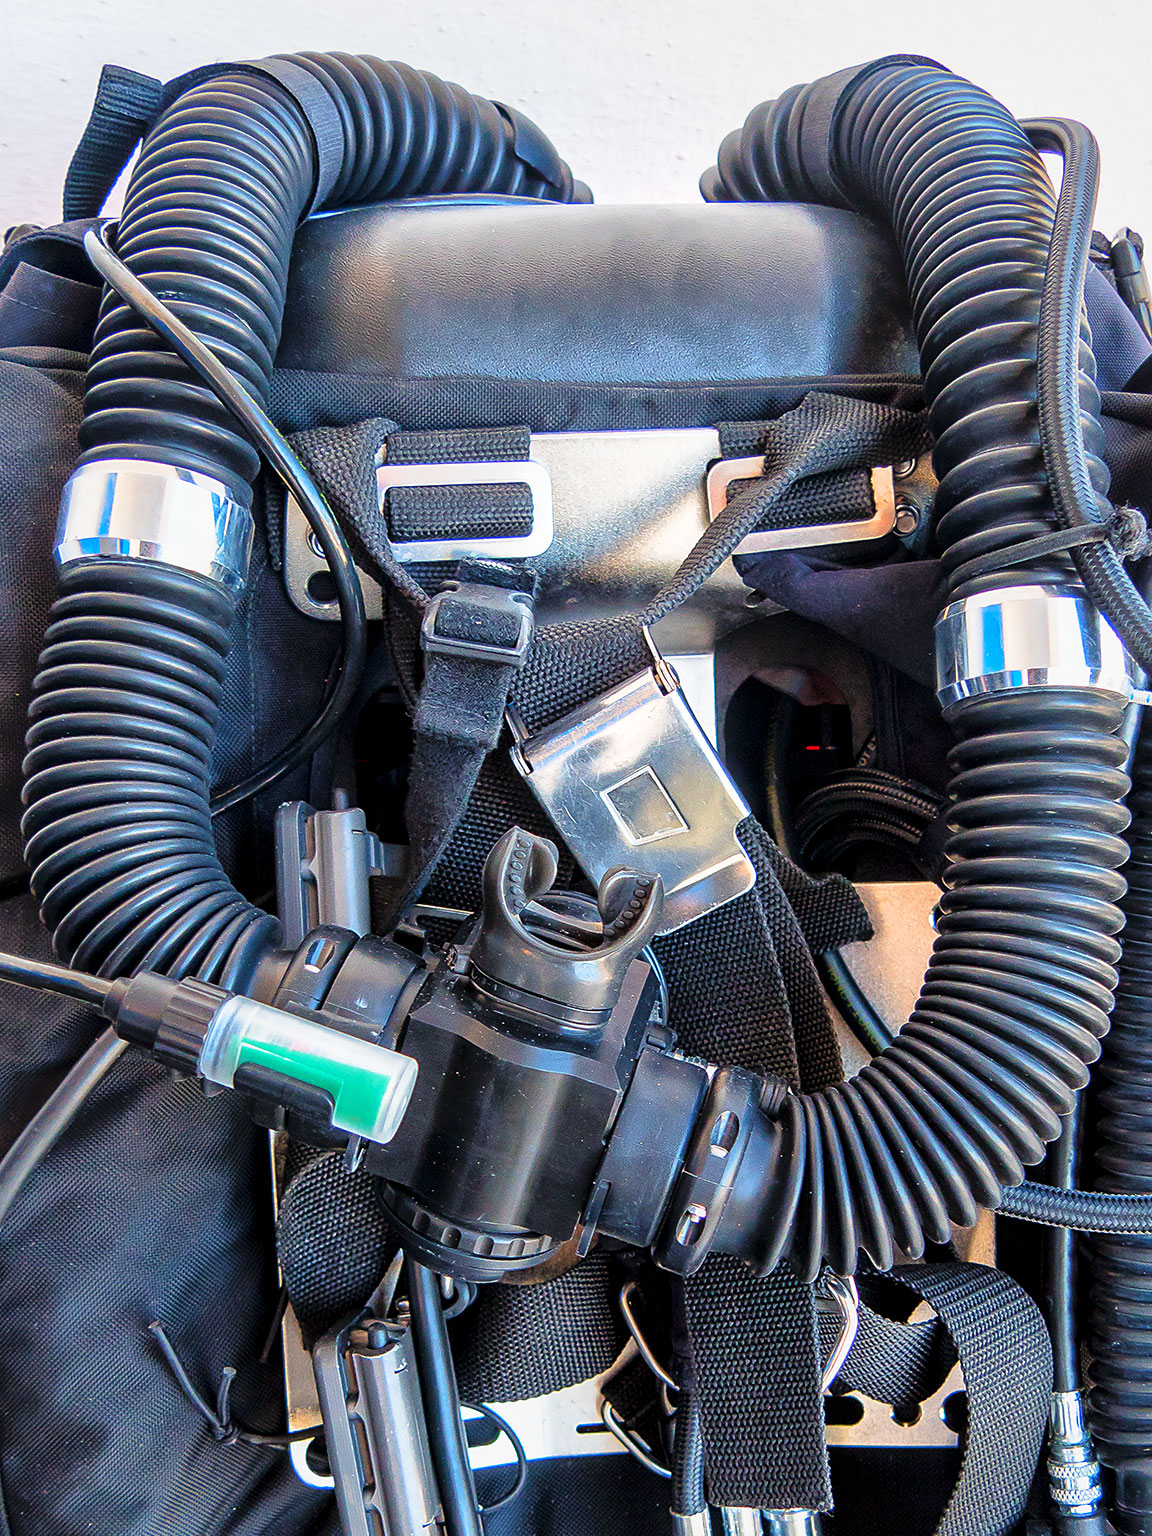 Notice the twin hoses connected to the mouth piece in the middle. Gas breathed comes in from one hose, and is exhaled and 'recycled' through the other.